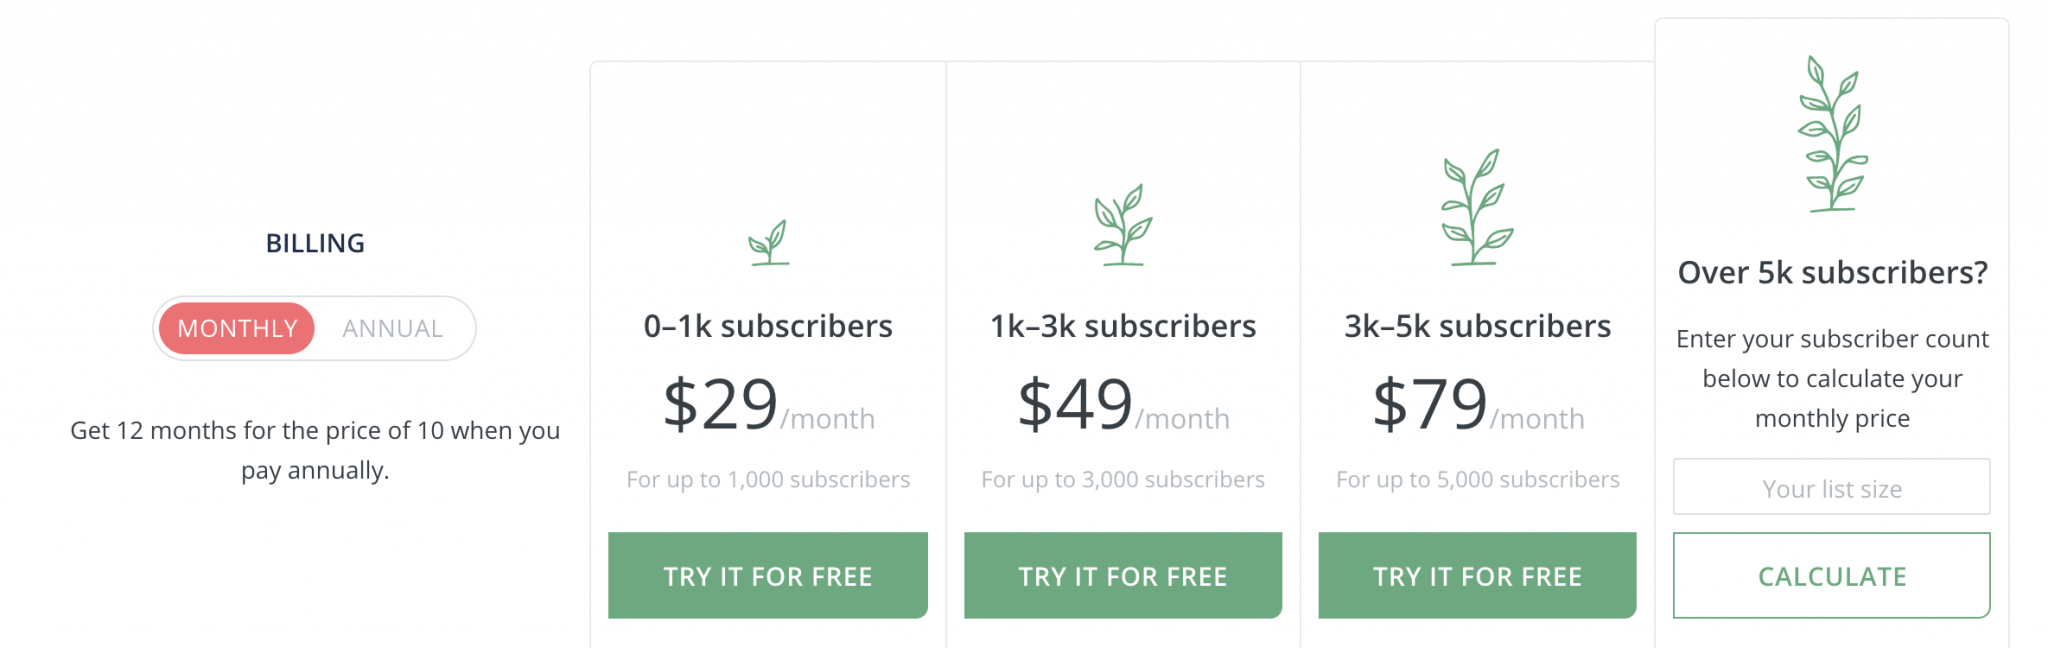 Discount Online Coupon 2020 Convertkit